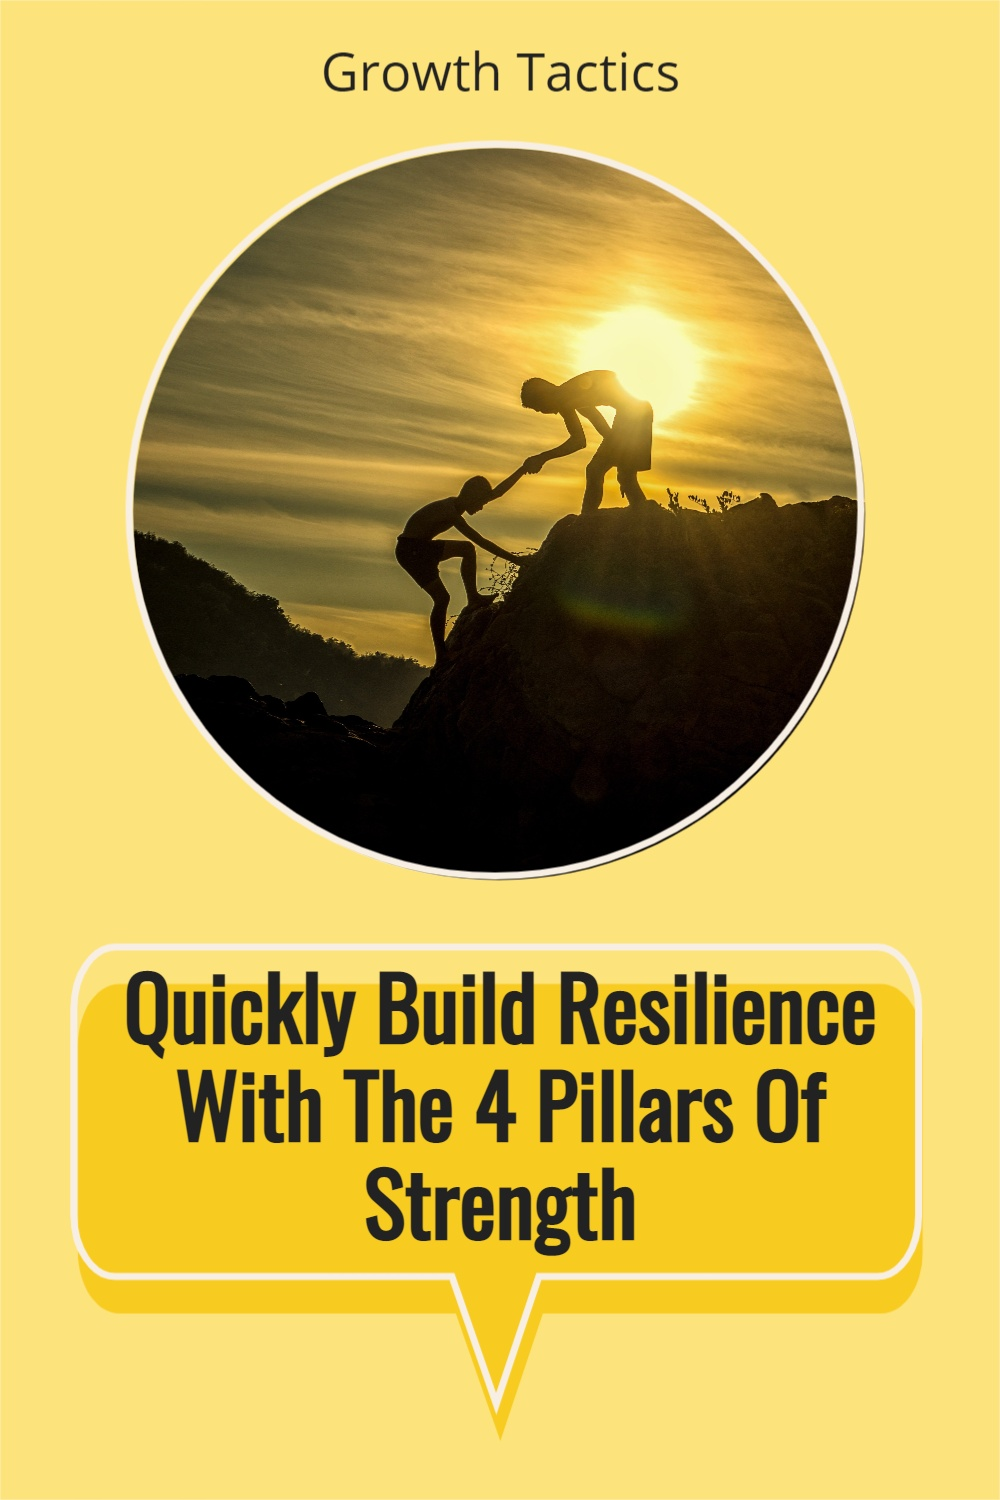 Quickly Build Soaring Resilience With The 4 Pillars Of Strength